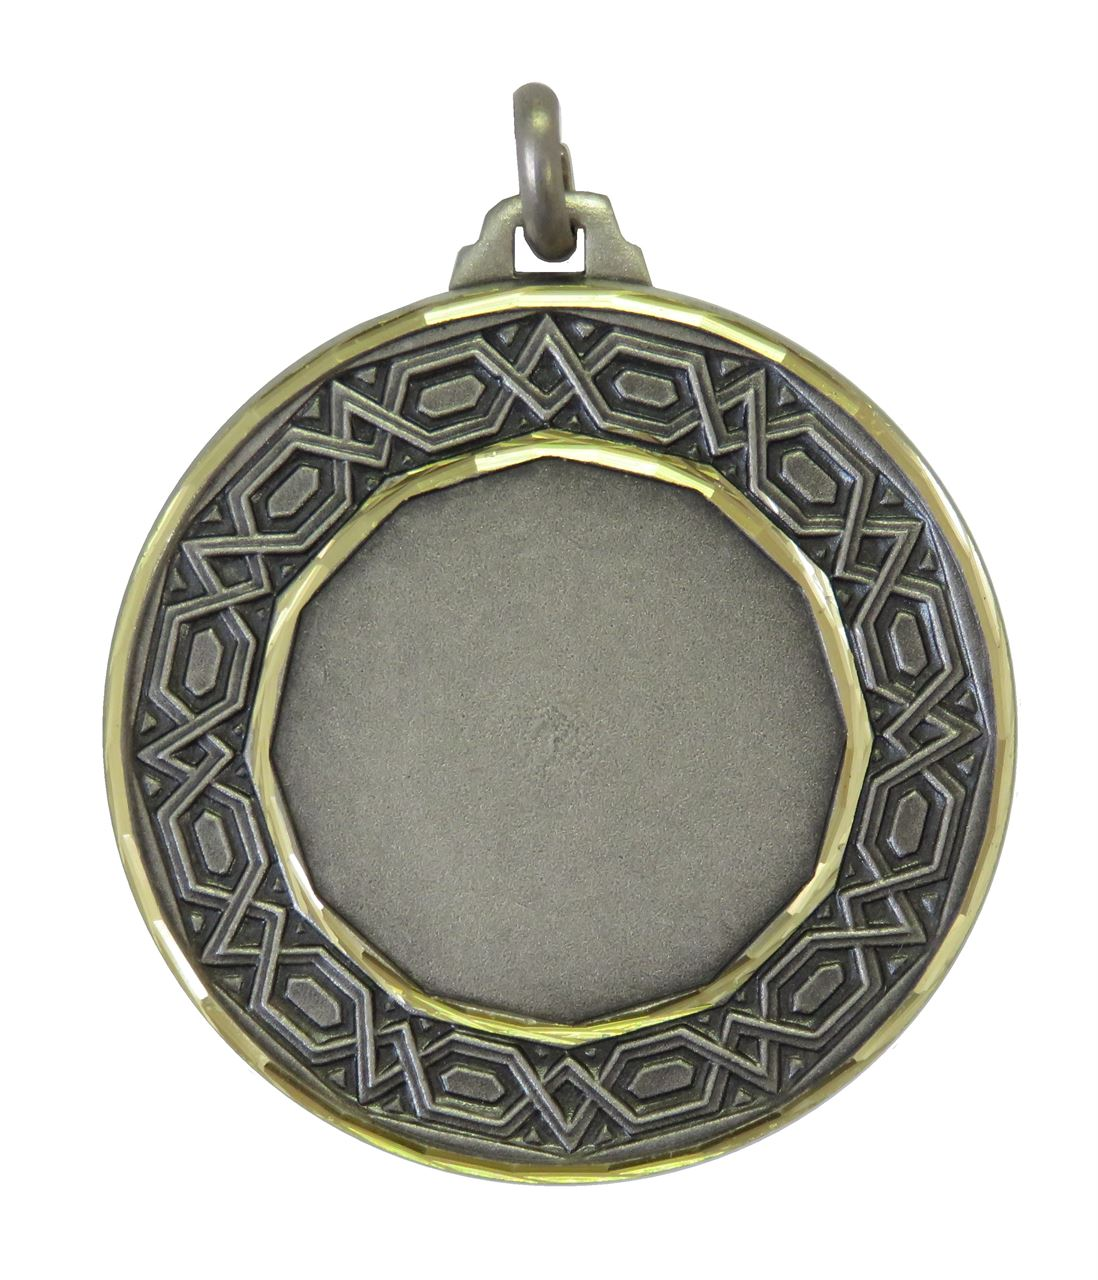 Silver Faceted Nile Medal (size: 42mm) - 5530F